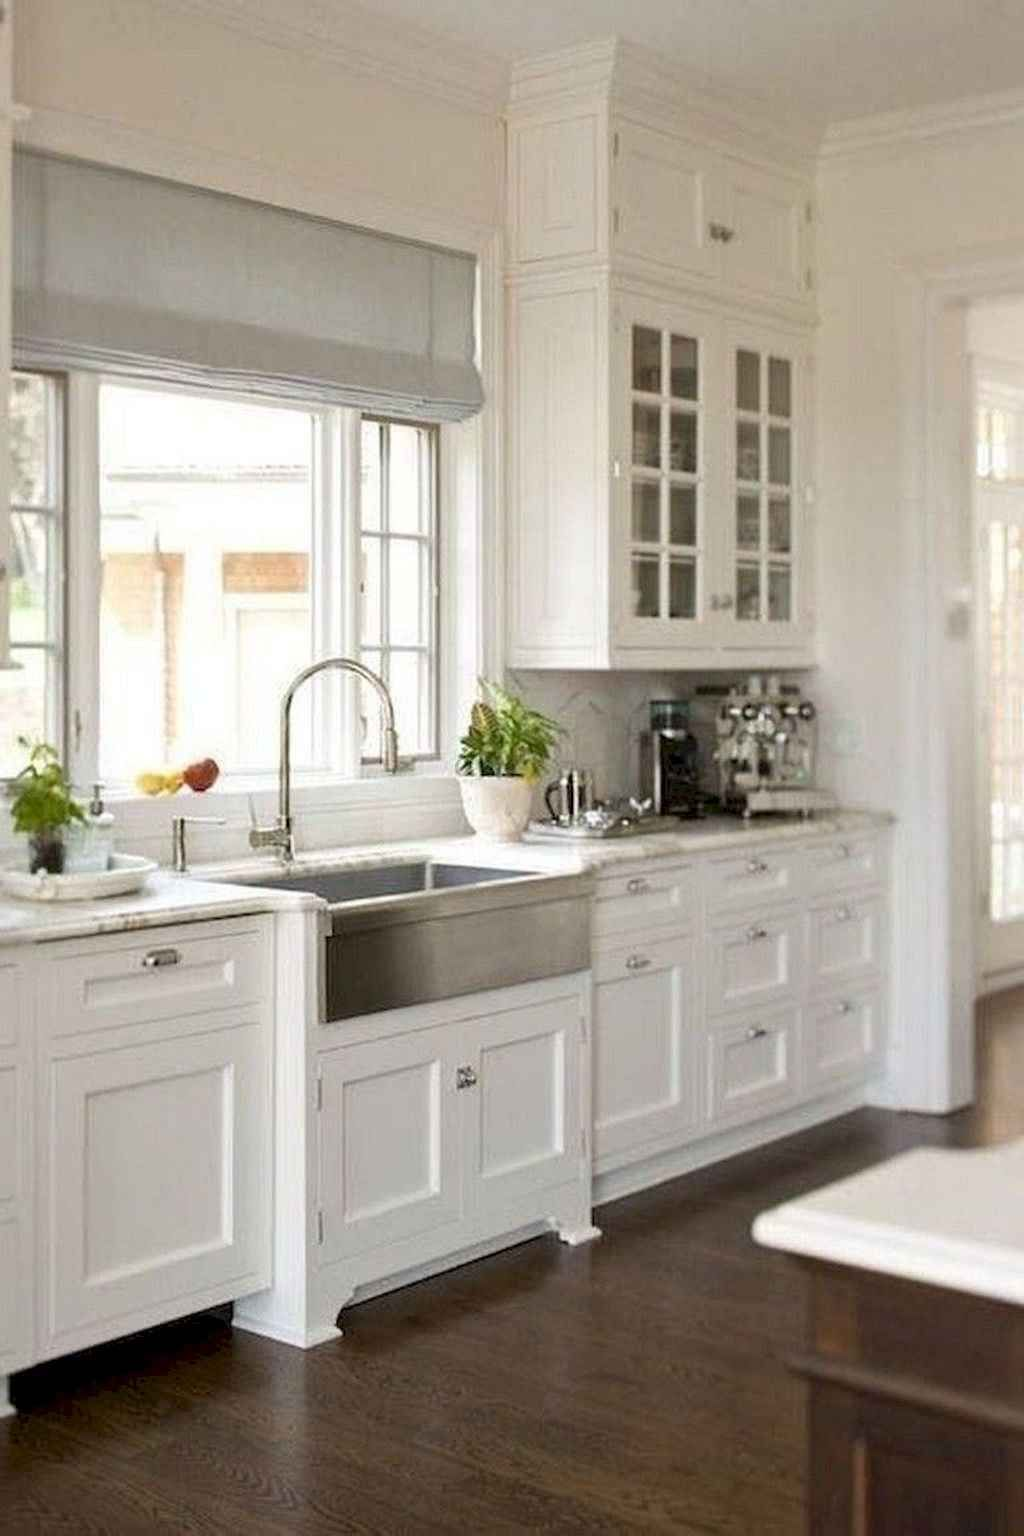 70 beautiful white kitchen cabinet makeover ideas kitchen cabinet styles kitchen sink decor on kitchen cabinets farmhouse style id=96663